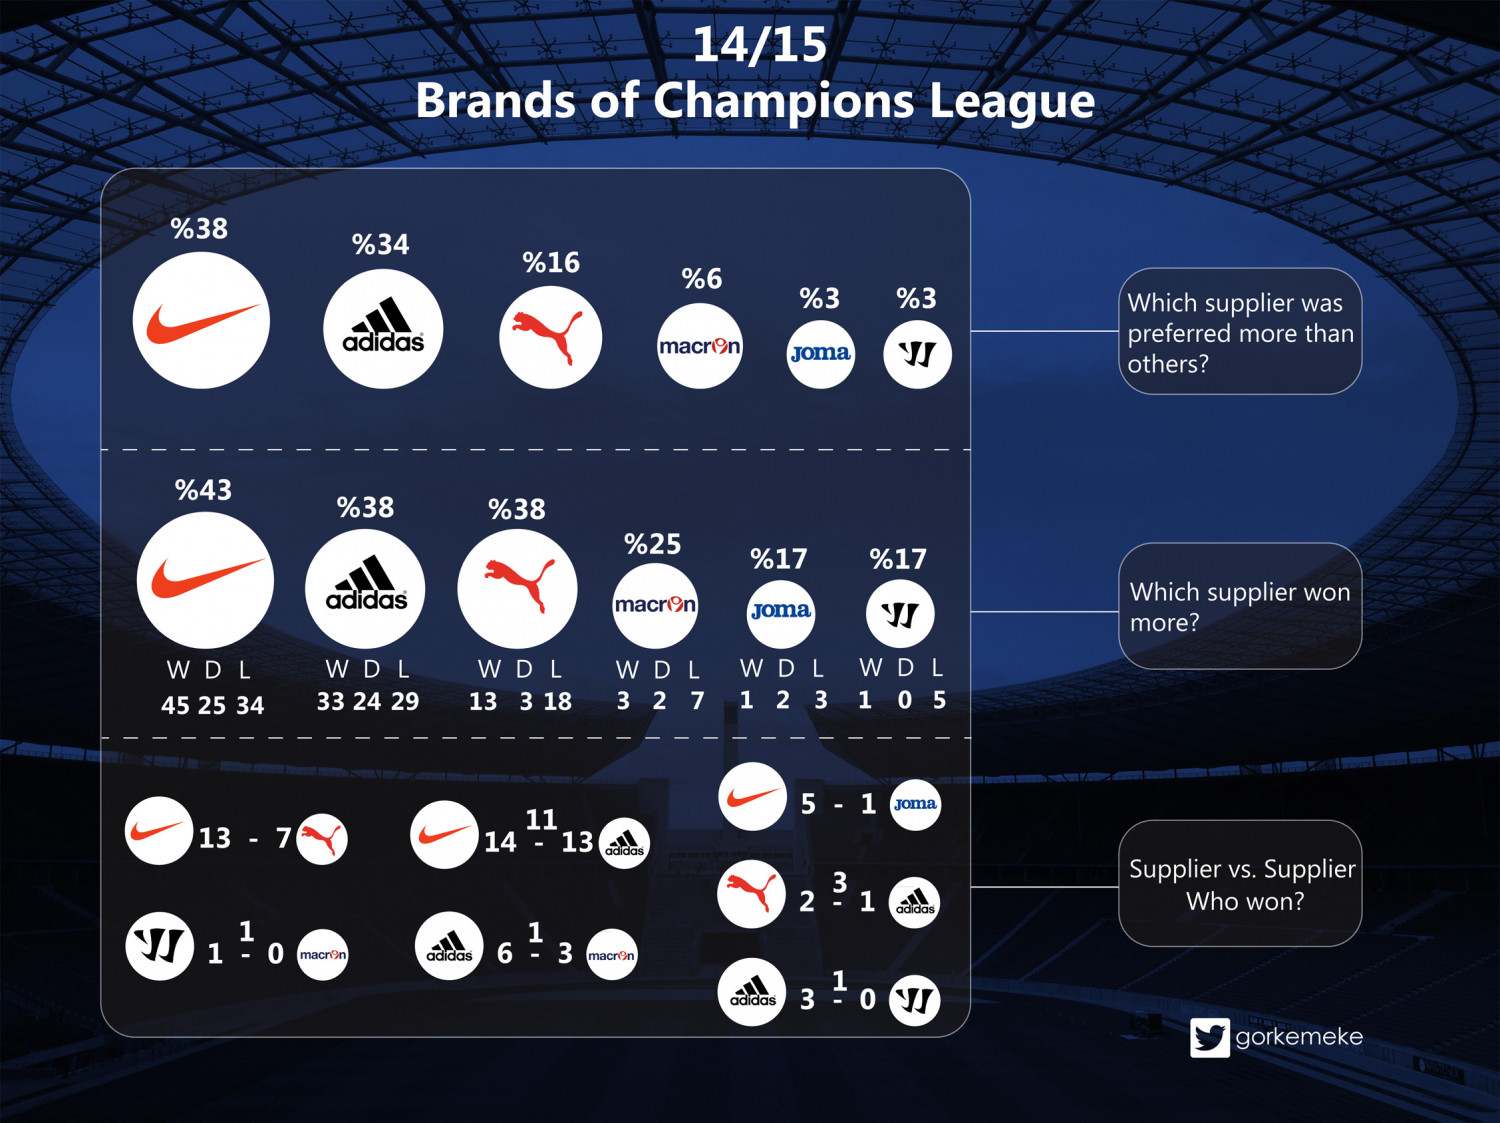 champions league system